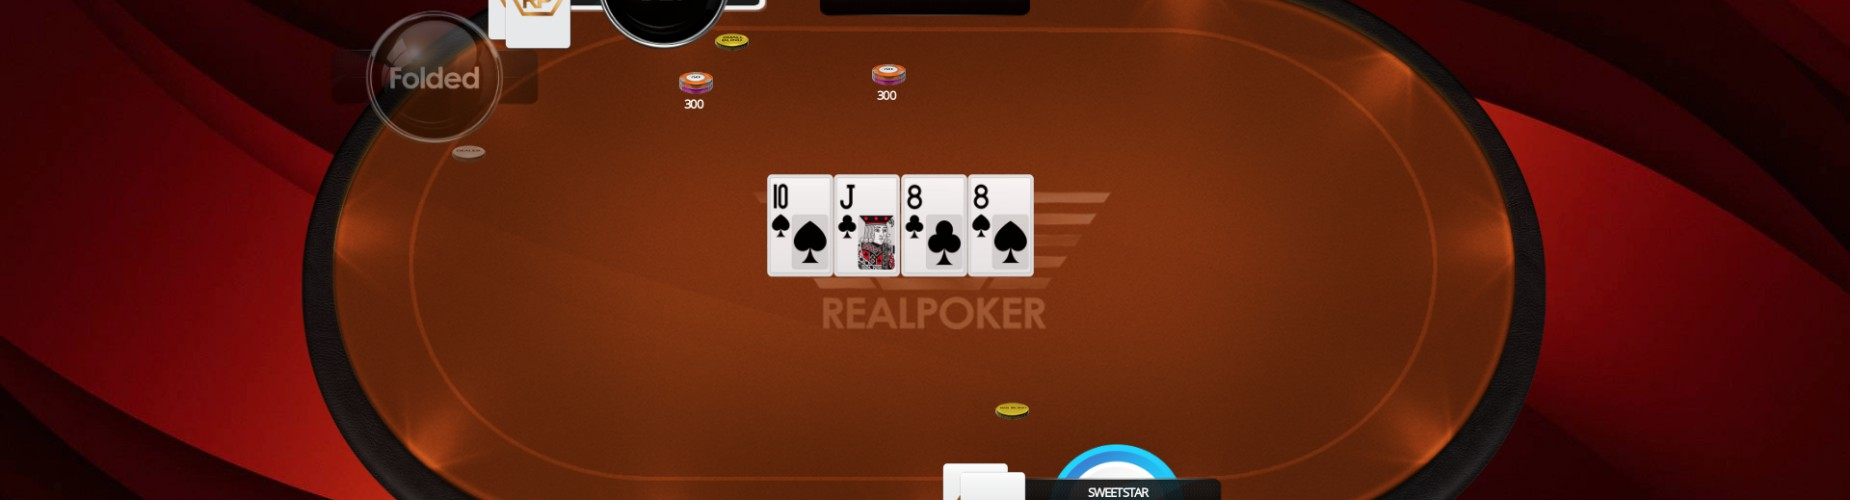 Differences Between Texas Holdem and 6 Plus Poker